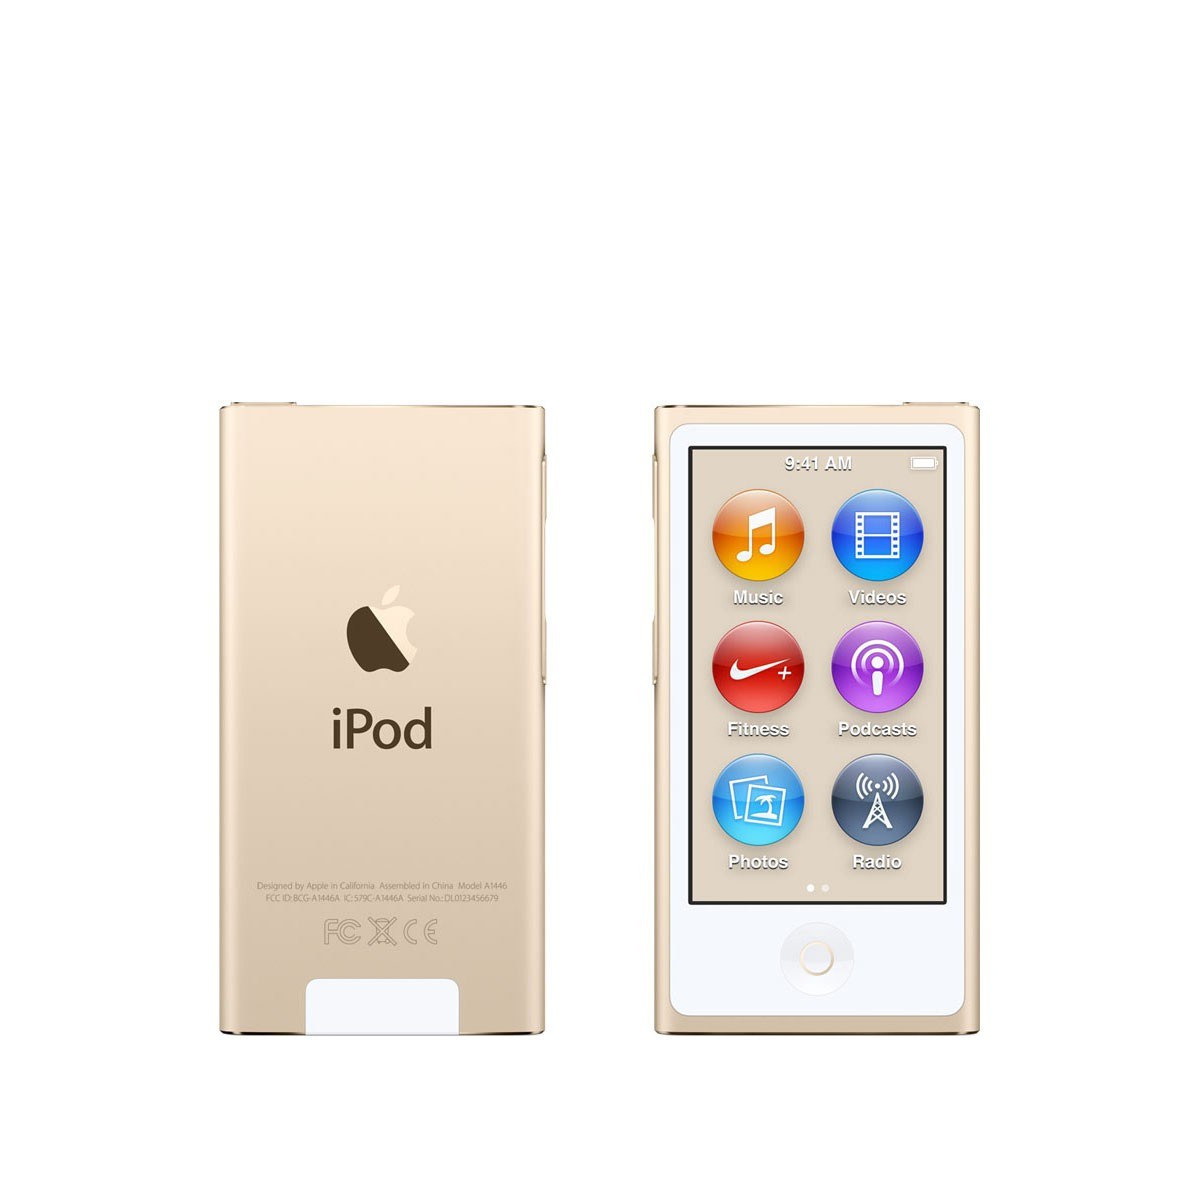 iPod nano 16GB - Gold